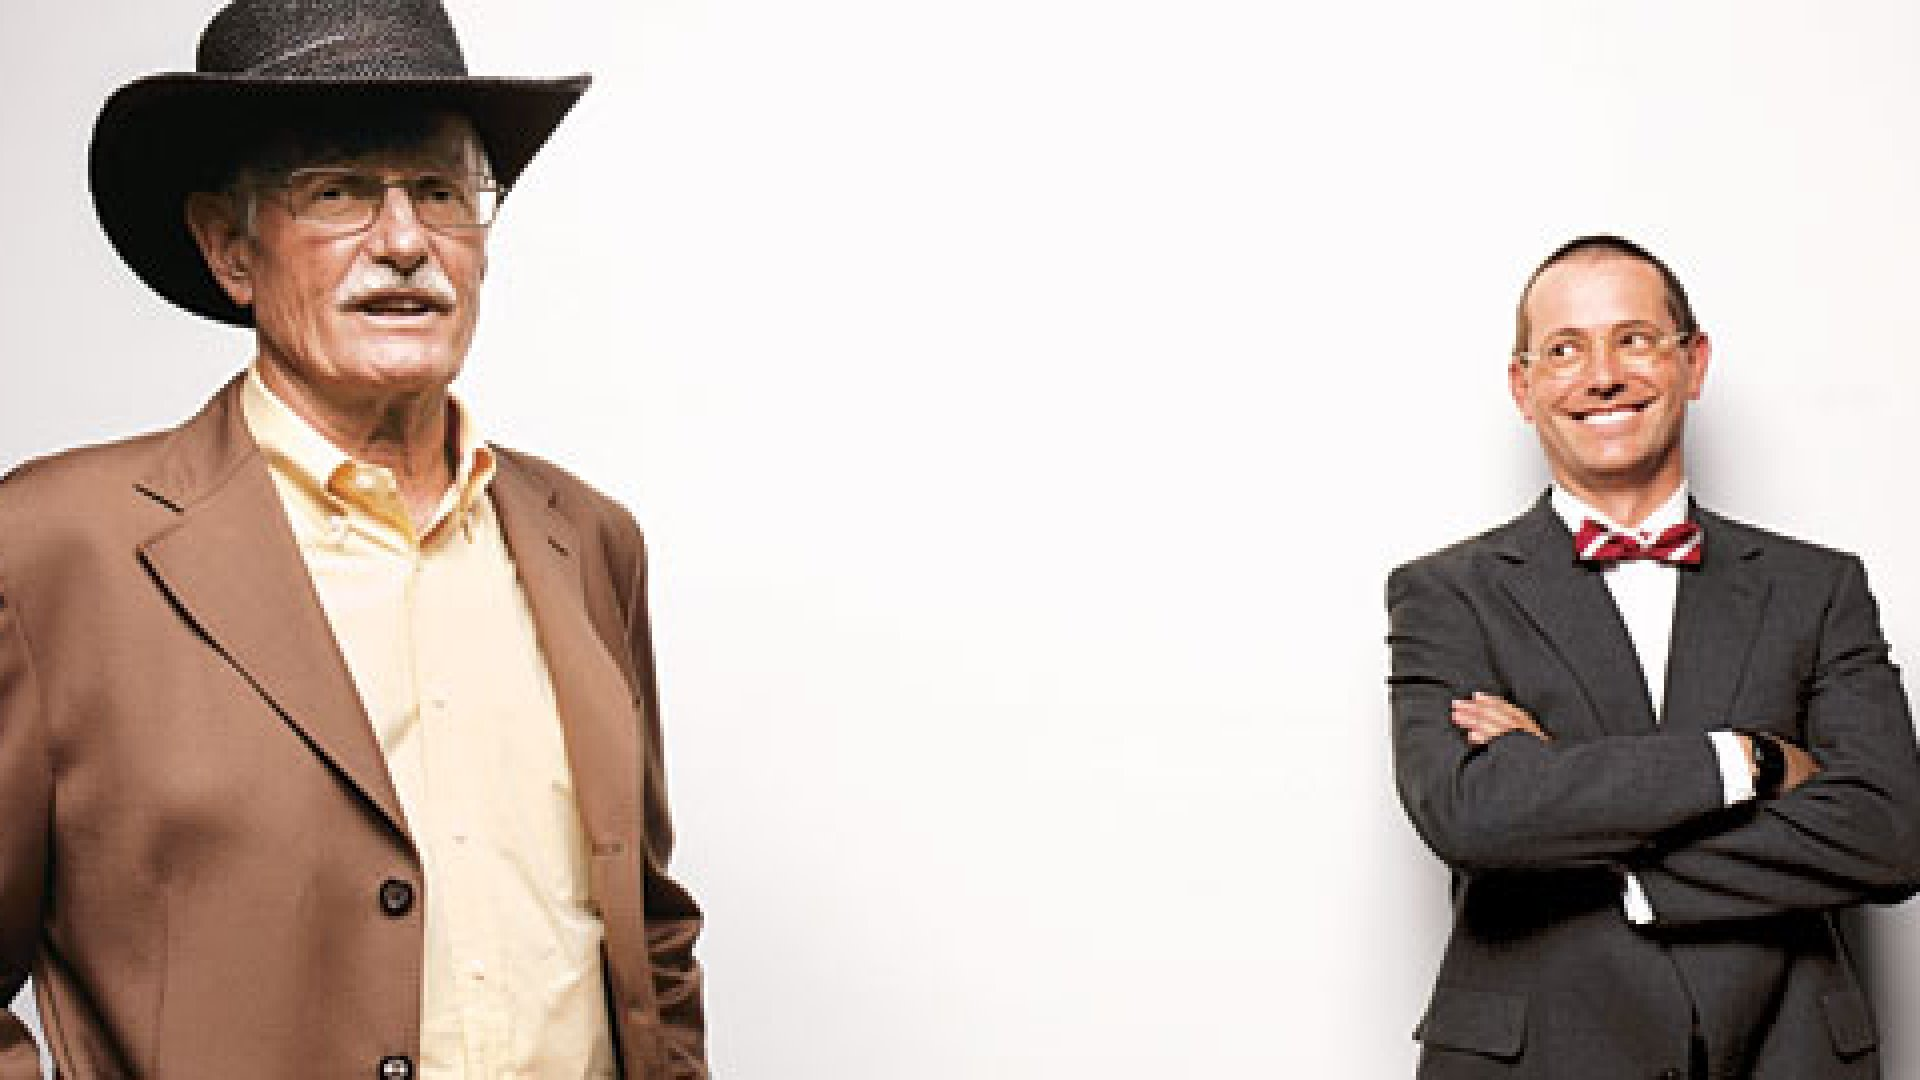 <strong>THE COWBOY AND THE PROFESSOR:</strong> Scott Koeze (in the black hat) sold the family company to his son, Jeff (in the bowtie). The transition was not seamless.